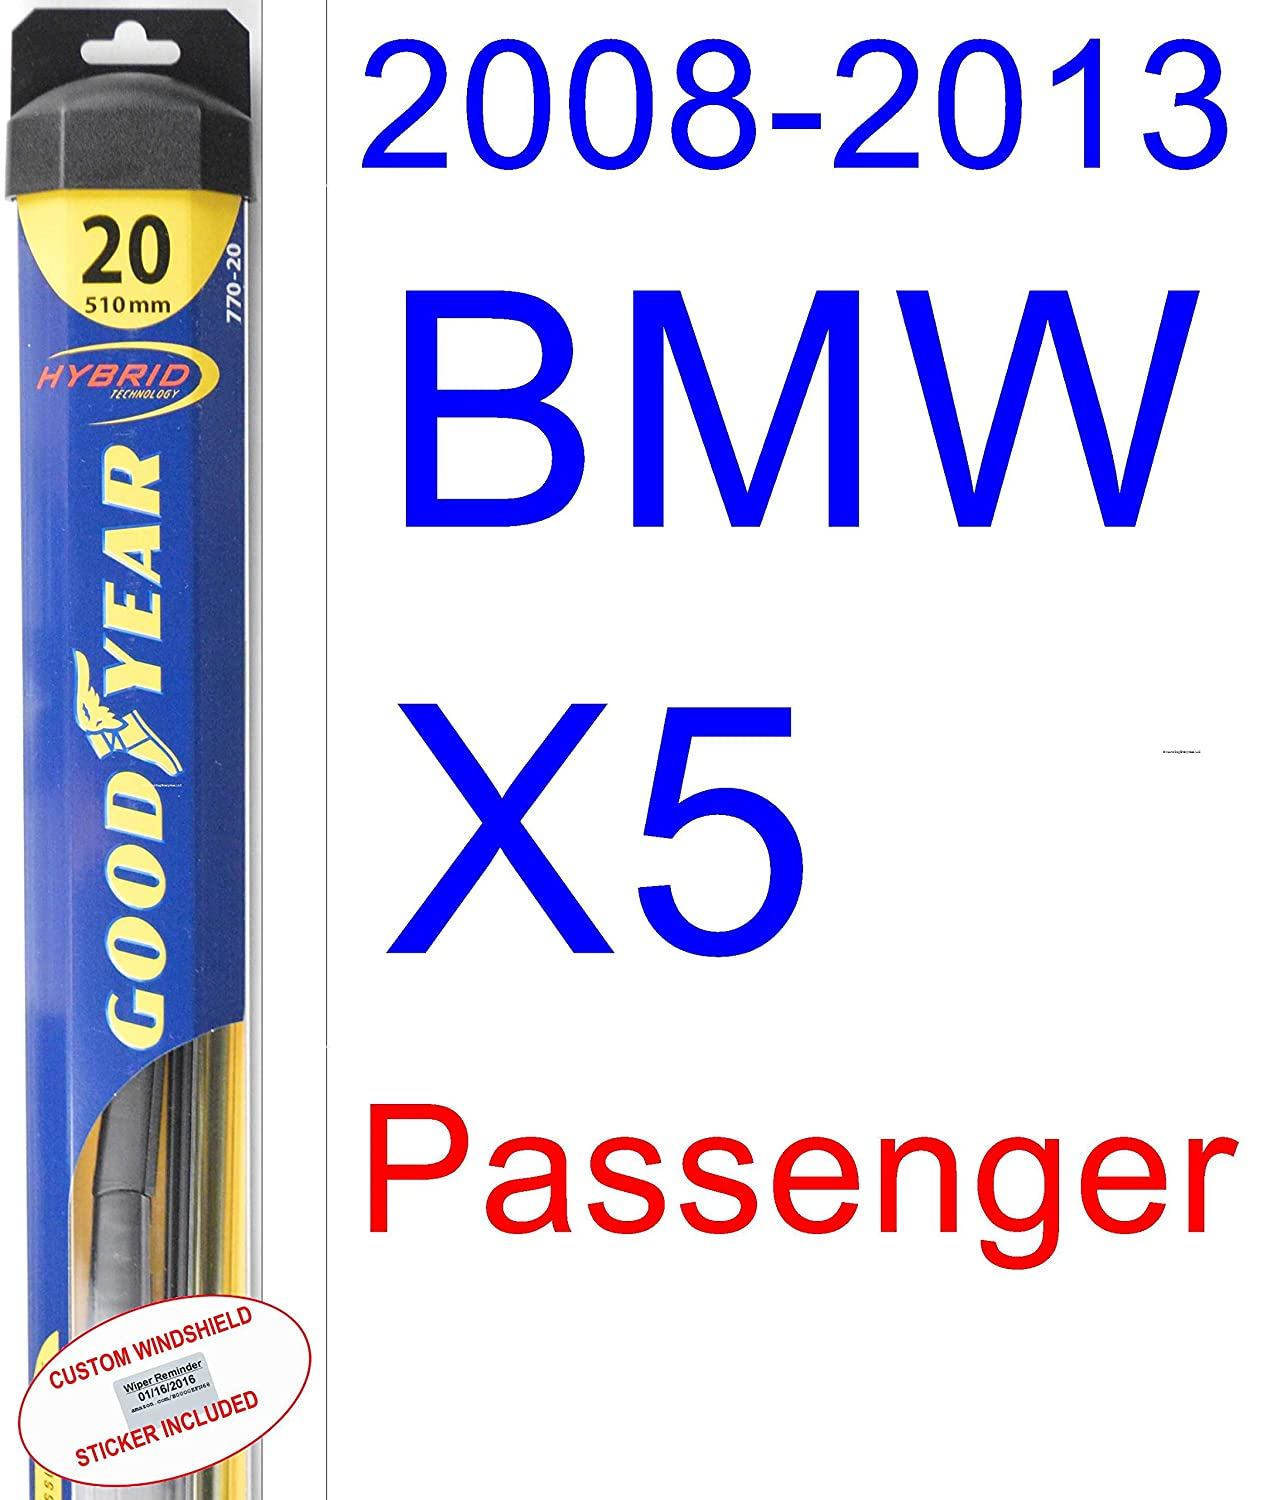 Amazon.com: 2008-2013 BMW X5 Wiper Blade (Passenger) (Goodyear Wiper Blades-Hybrid) (2009,2010,2011,2012): Automotive